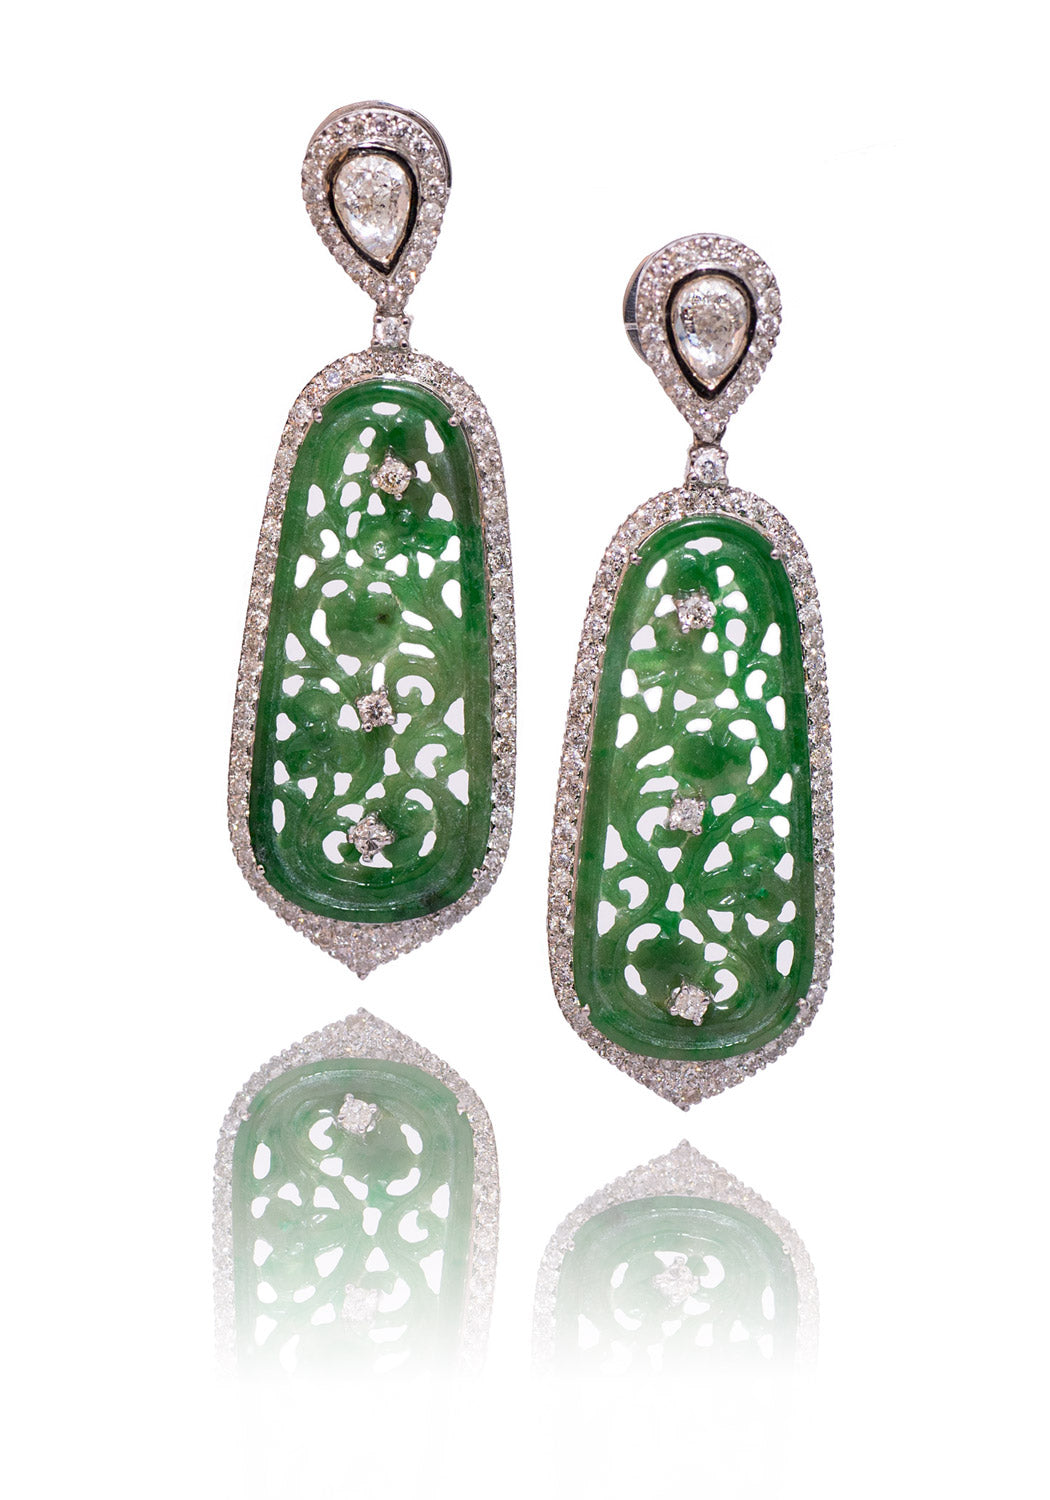 Mo & Me White Sapphire, Diamonds & Jade Earrings